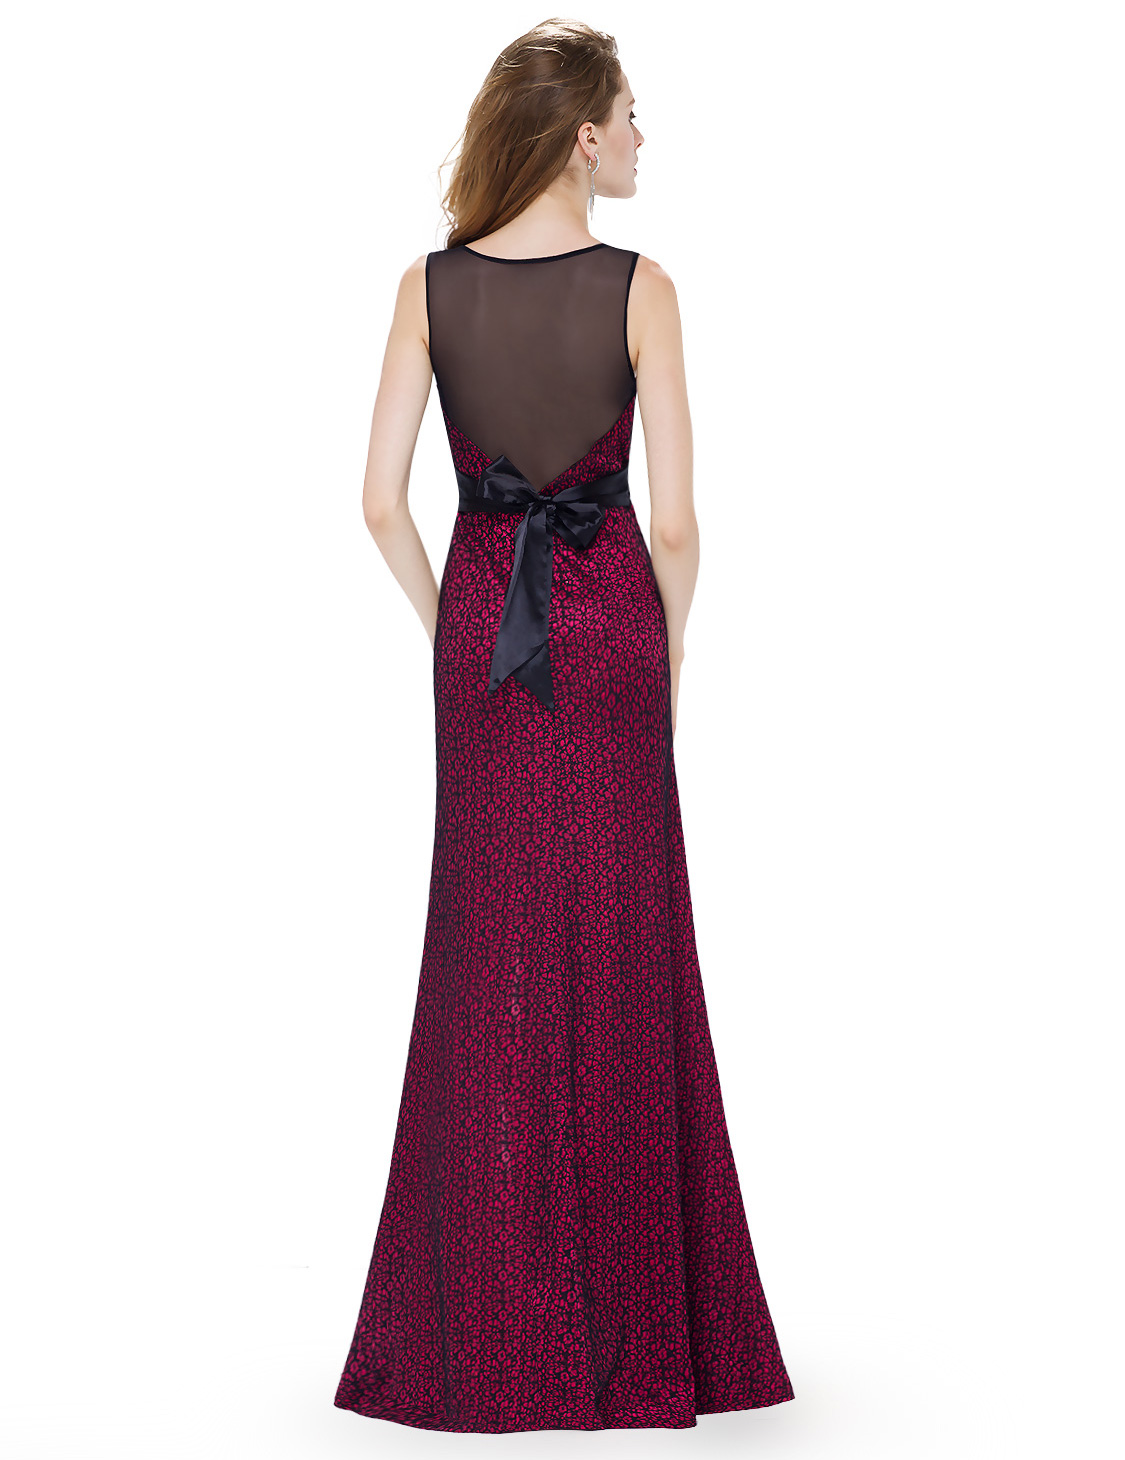 Long Cocktail Ever Pretty Us Women Long Cocktail Formal Evening Dress